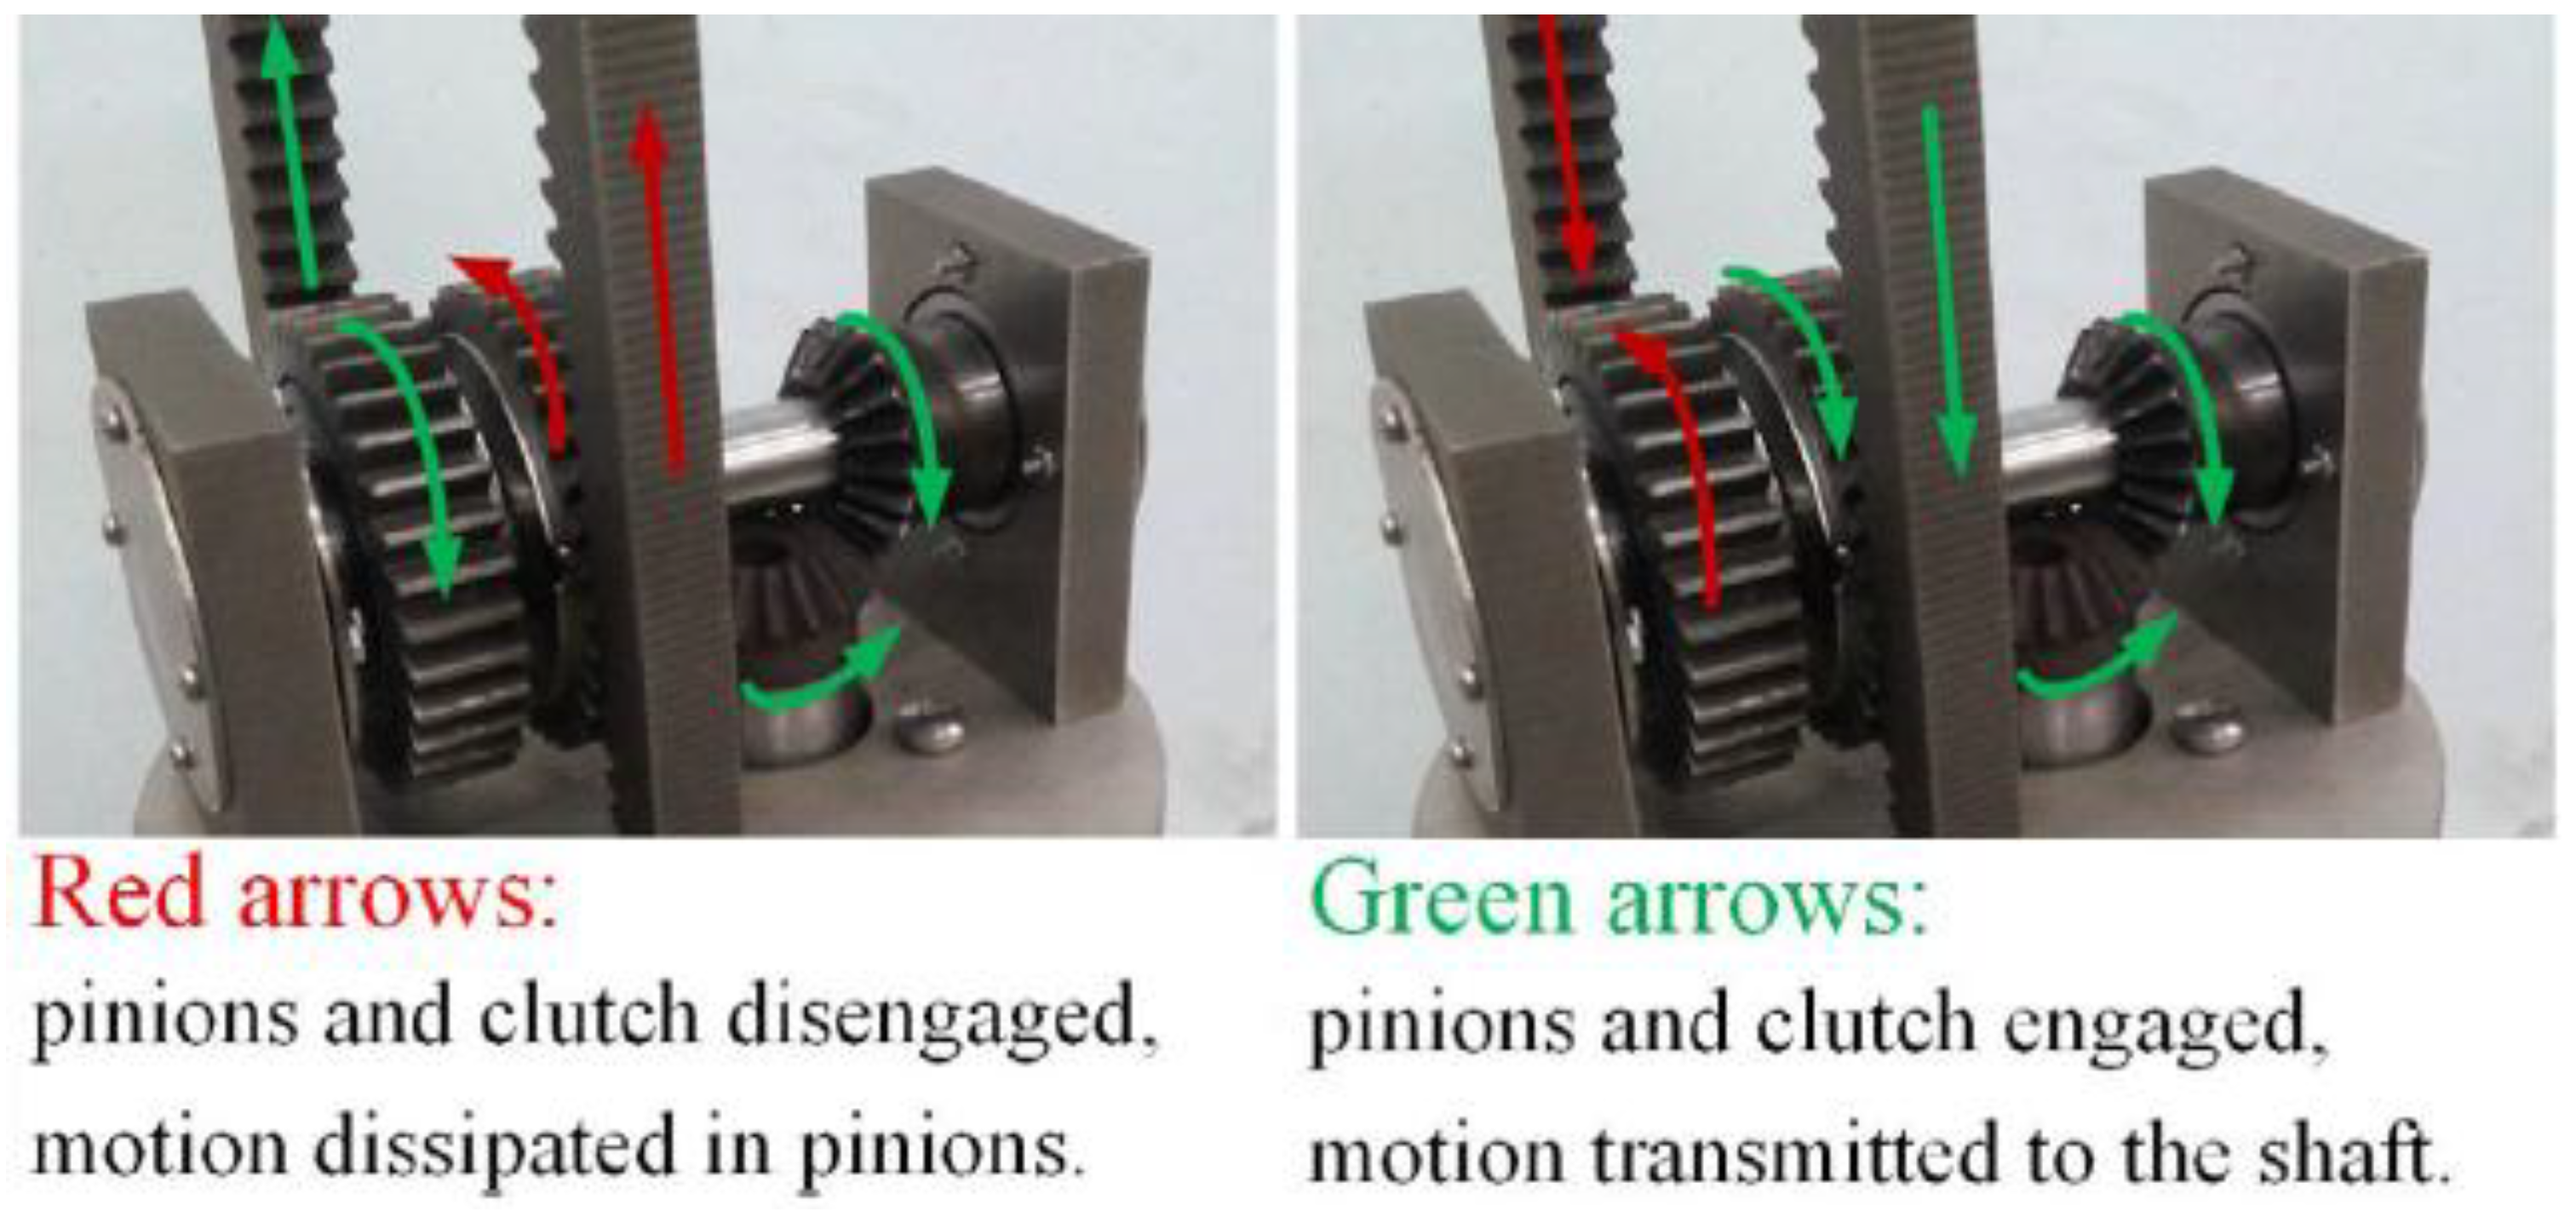 Energies Free Full Text A Comprehensive Review Of The Techniques Figure 223 Circuit Breaker With An Operating Handle 11 01167 G024